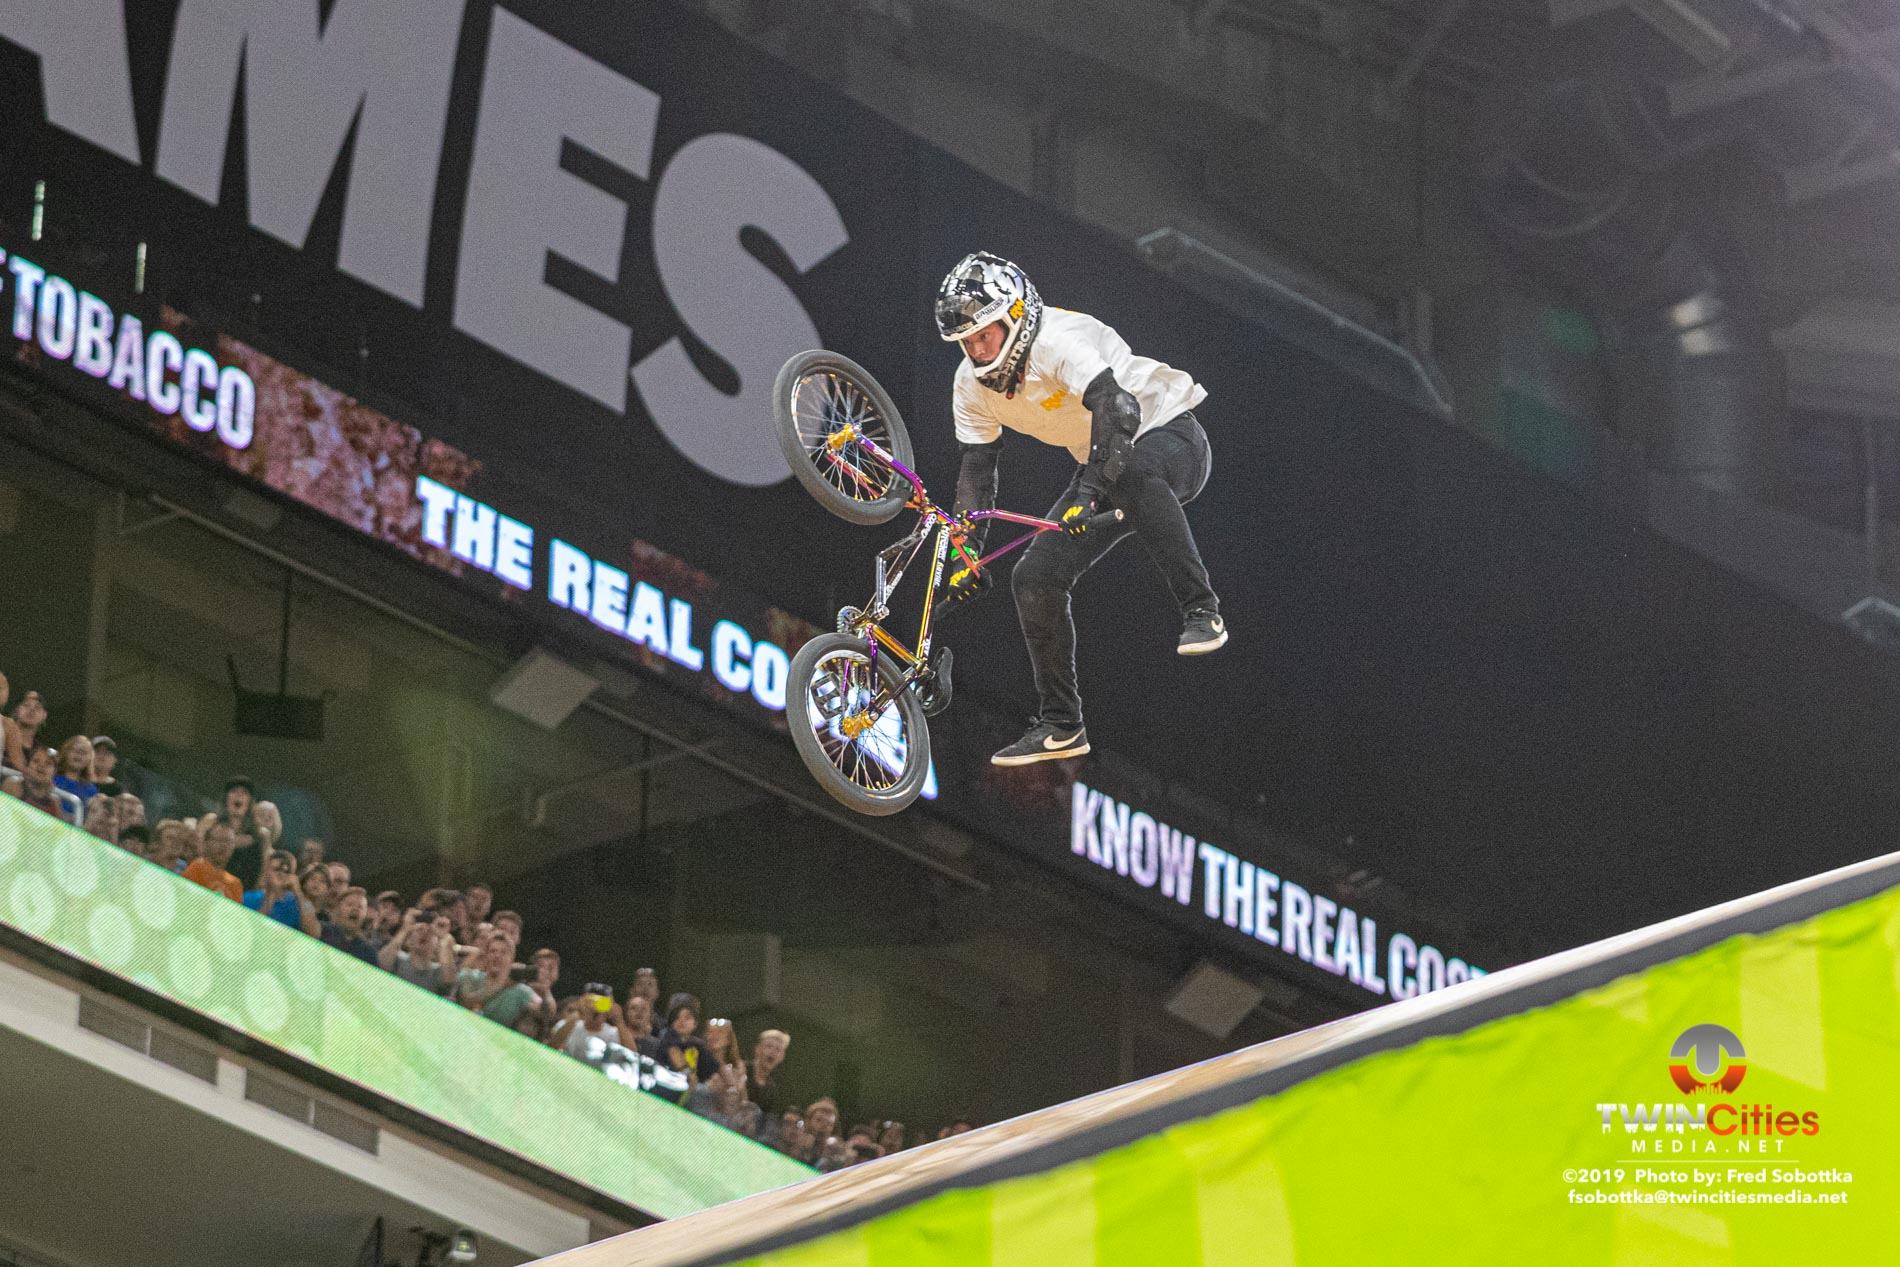 The-Real-Cost-BMX-Big-Air-07